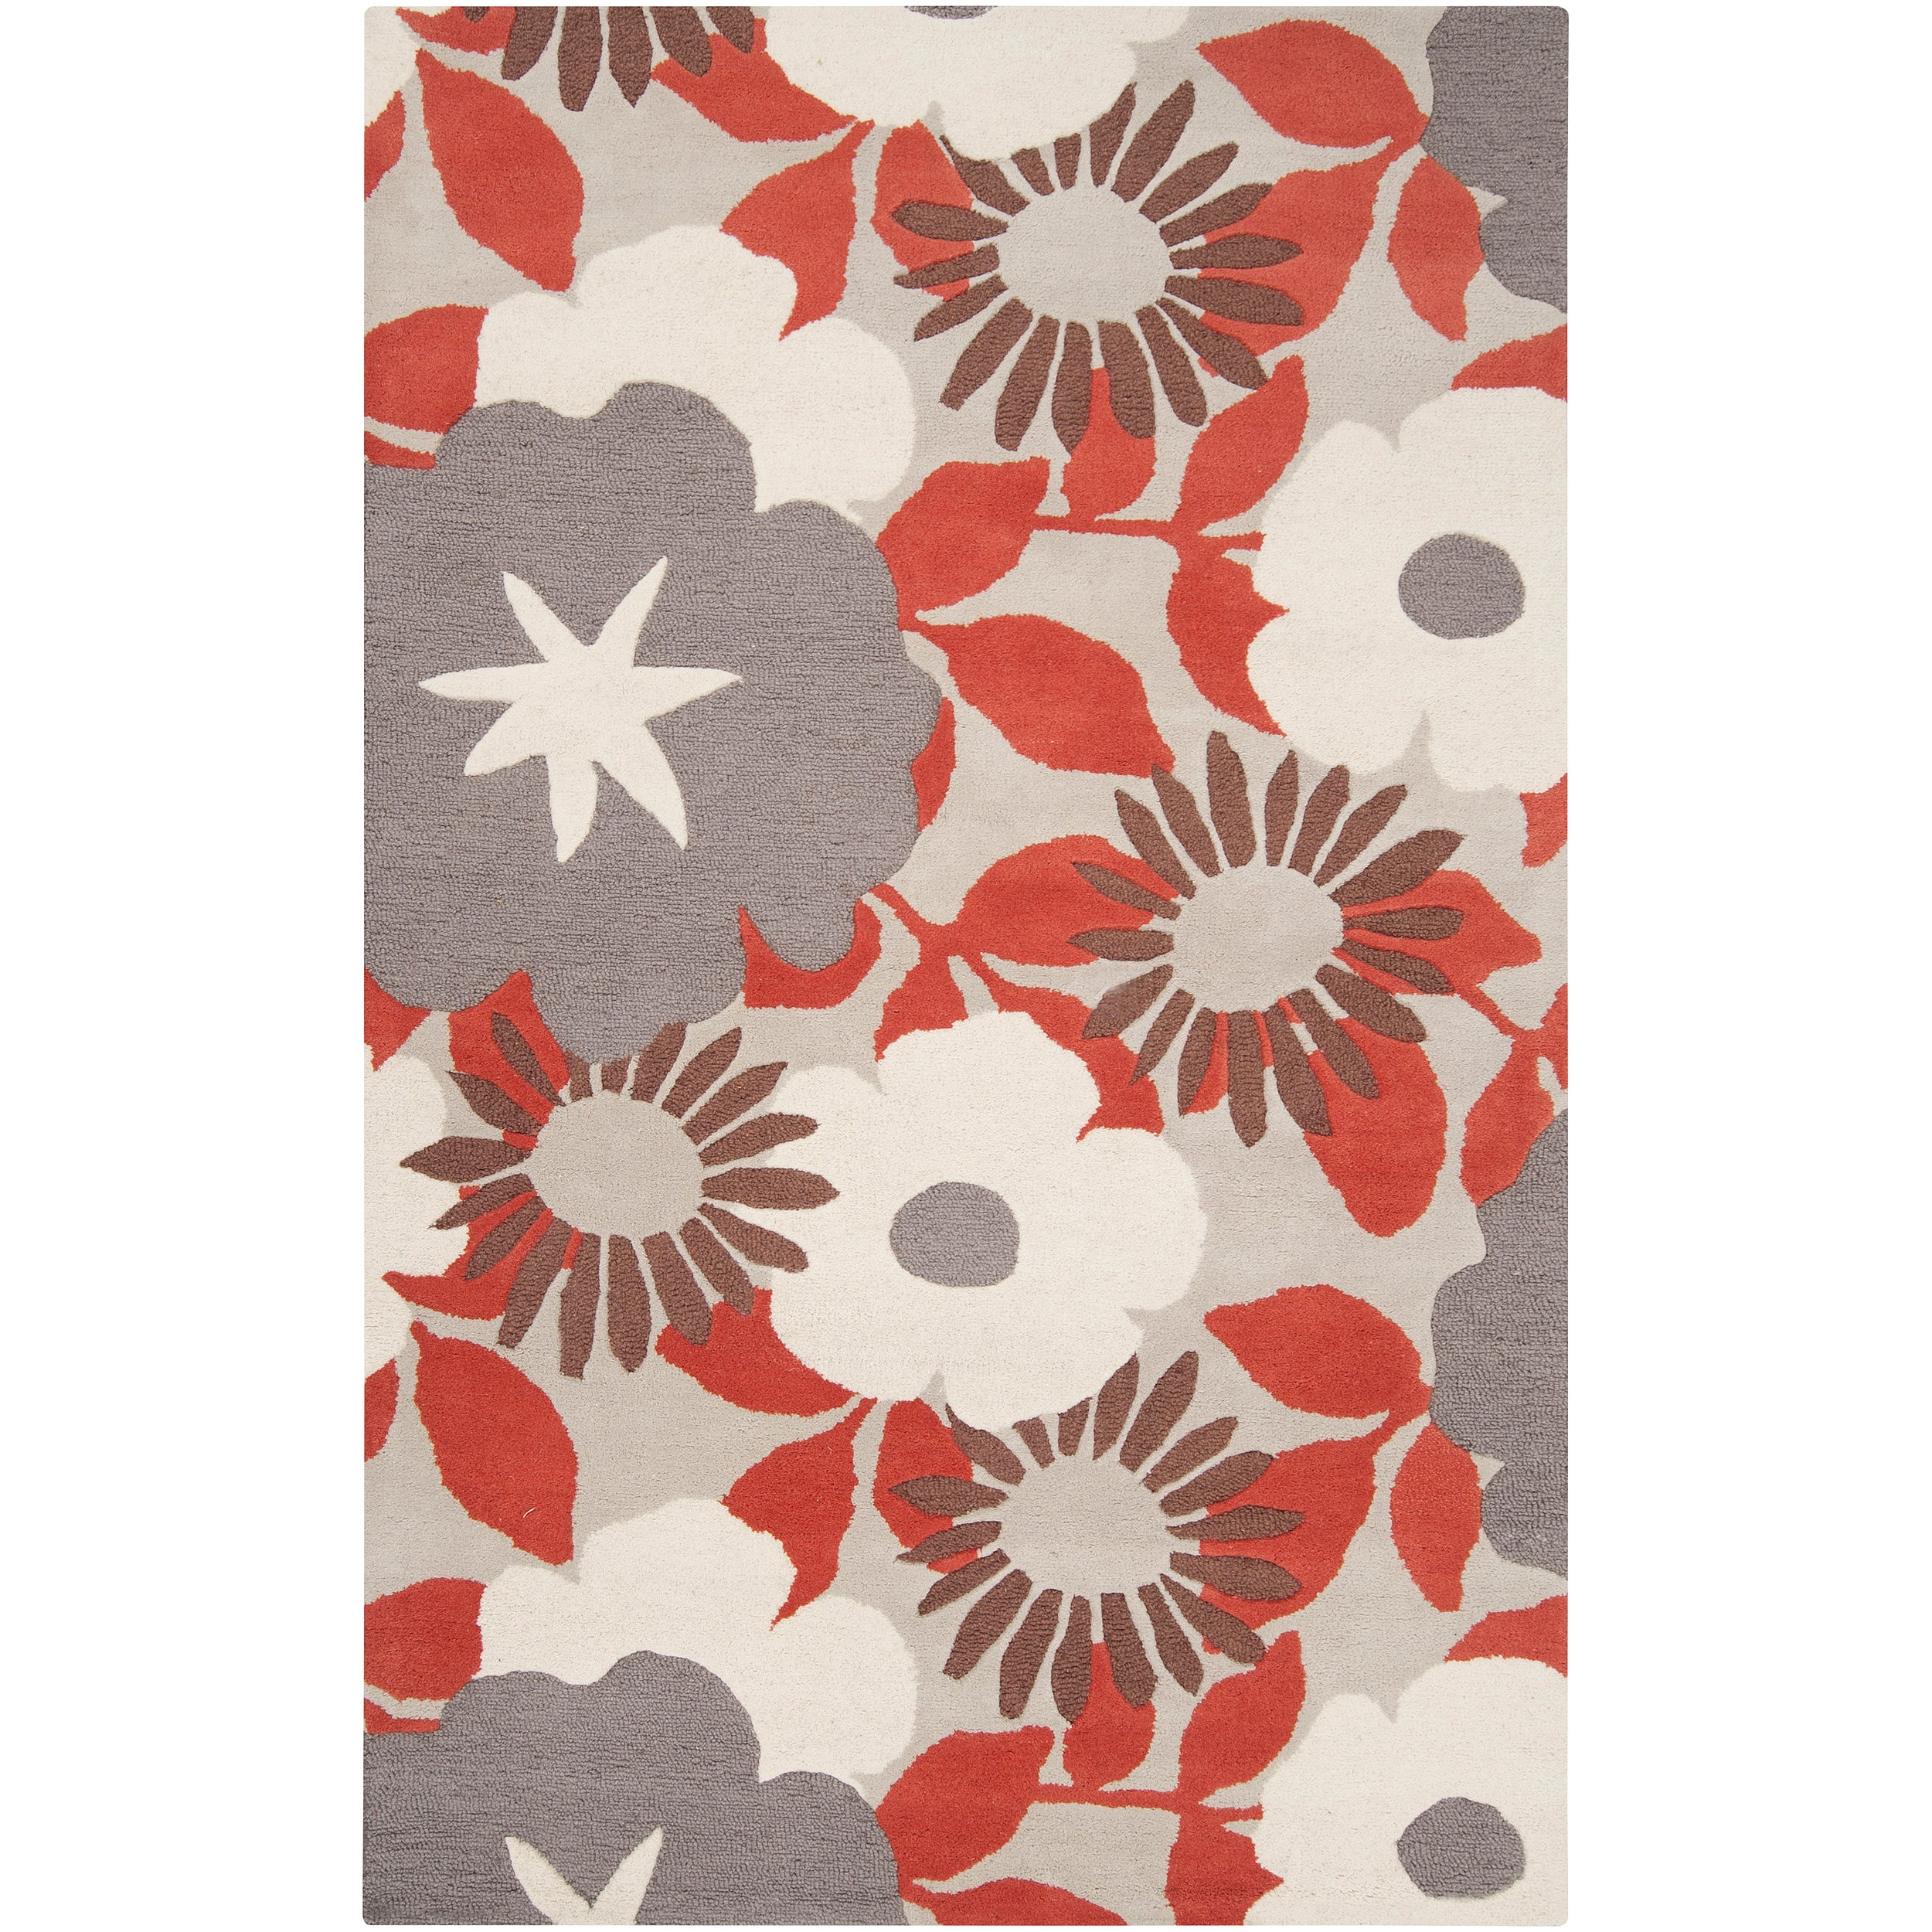 tepper jackson hand tufted contemporary red grey floral dreamscape wool rug 5 39 x 8 39 free. Black Bedroom Furniture Sets. Home Design Ideas